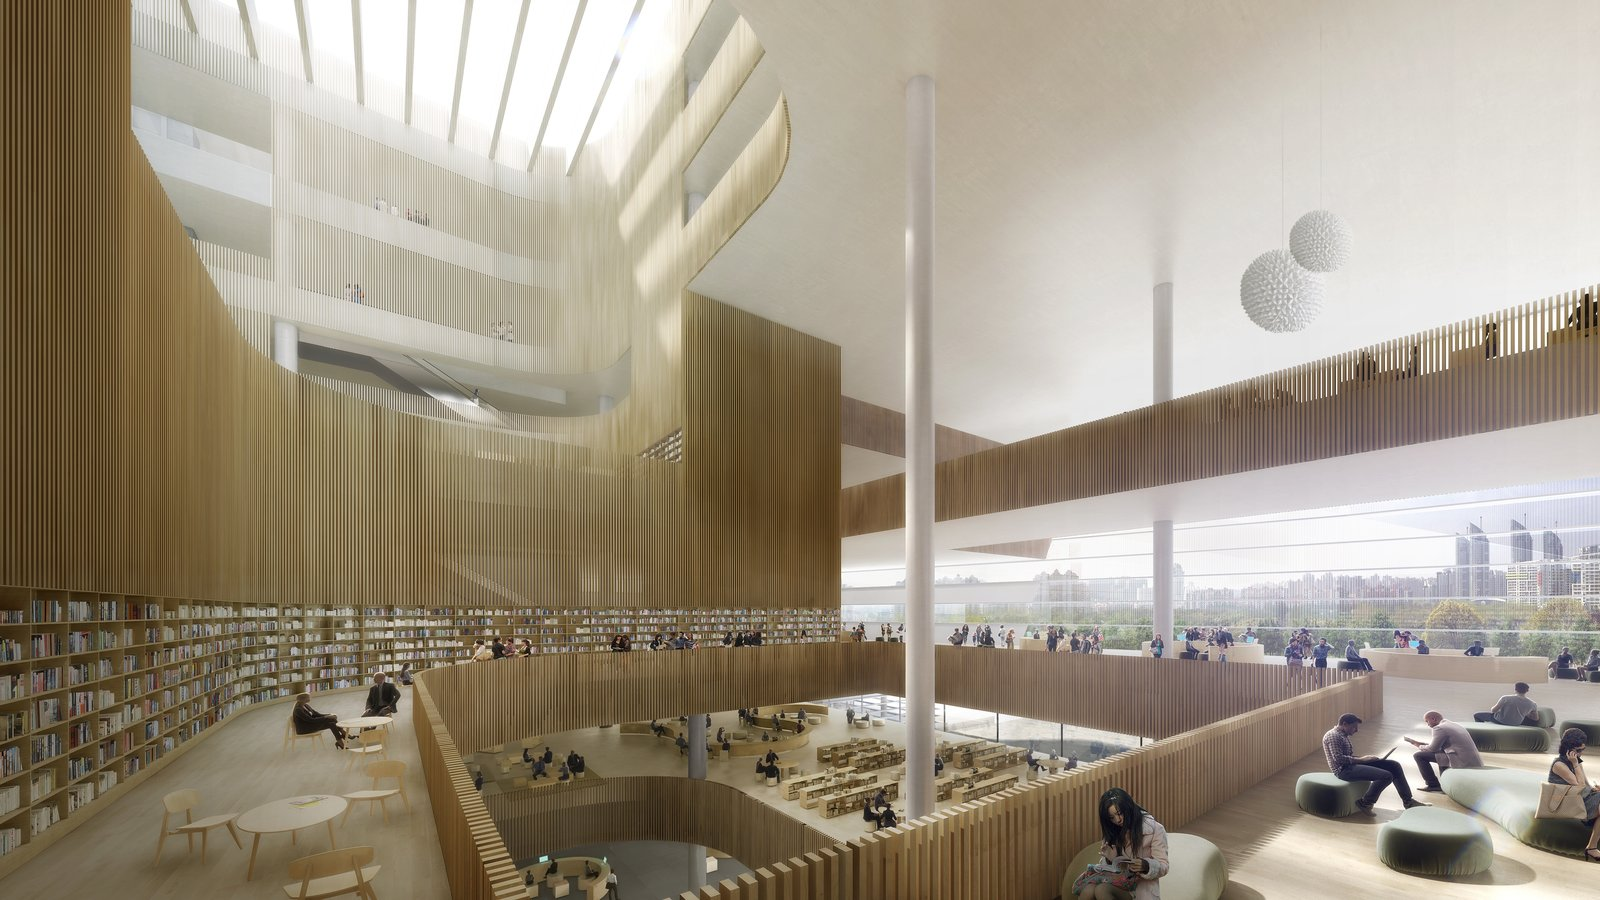 Three staggered reading rooms form a grand central atrium, creating intersecting spaces that encourage visitors to explore in a balance between inward and outward focus.  Photo 4 of 8 in Schmidt Hammer Lassen Architects' Winning Design For the Shanghai Library